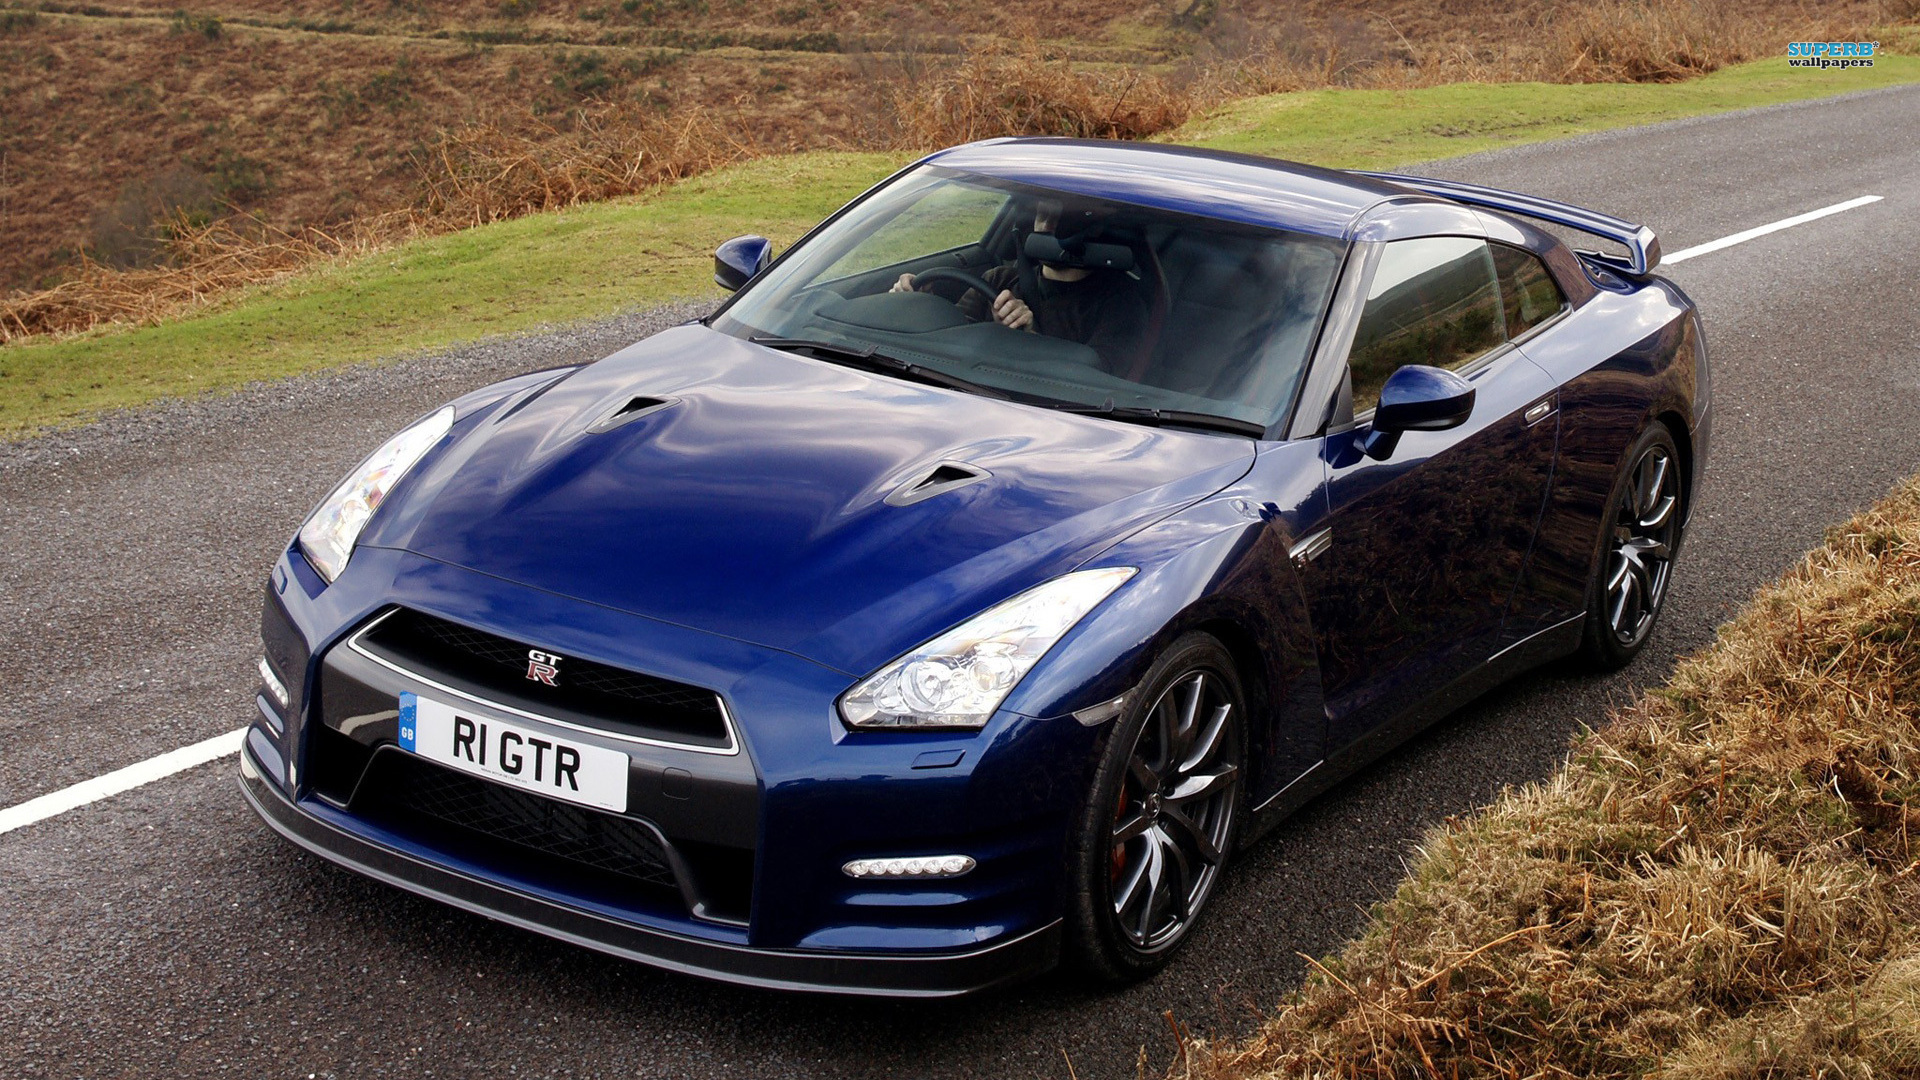 Nissan gt r nismo blue wallpaper 1920x1080 19708